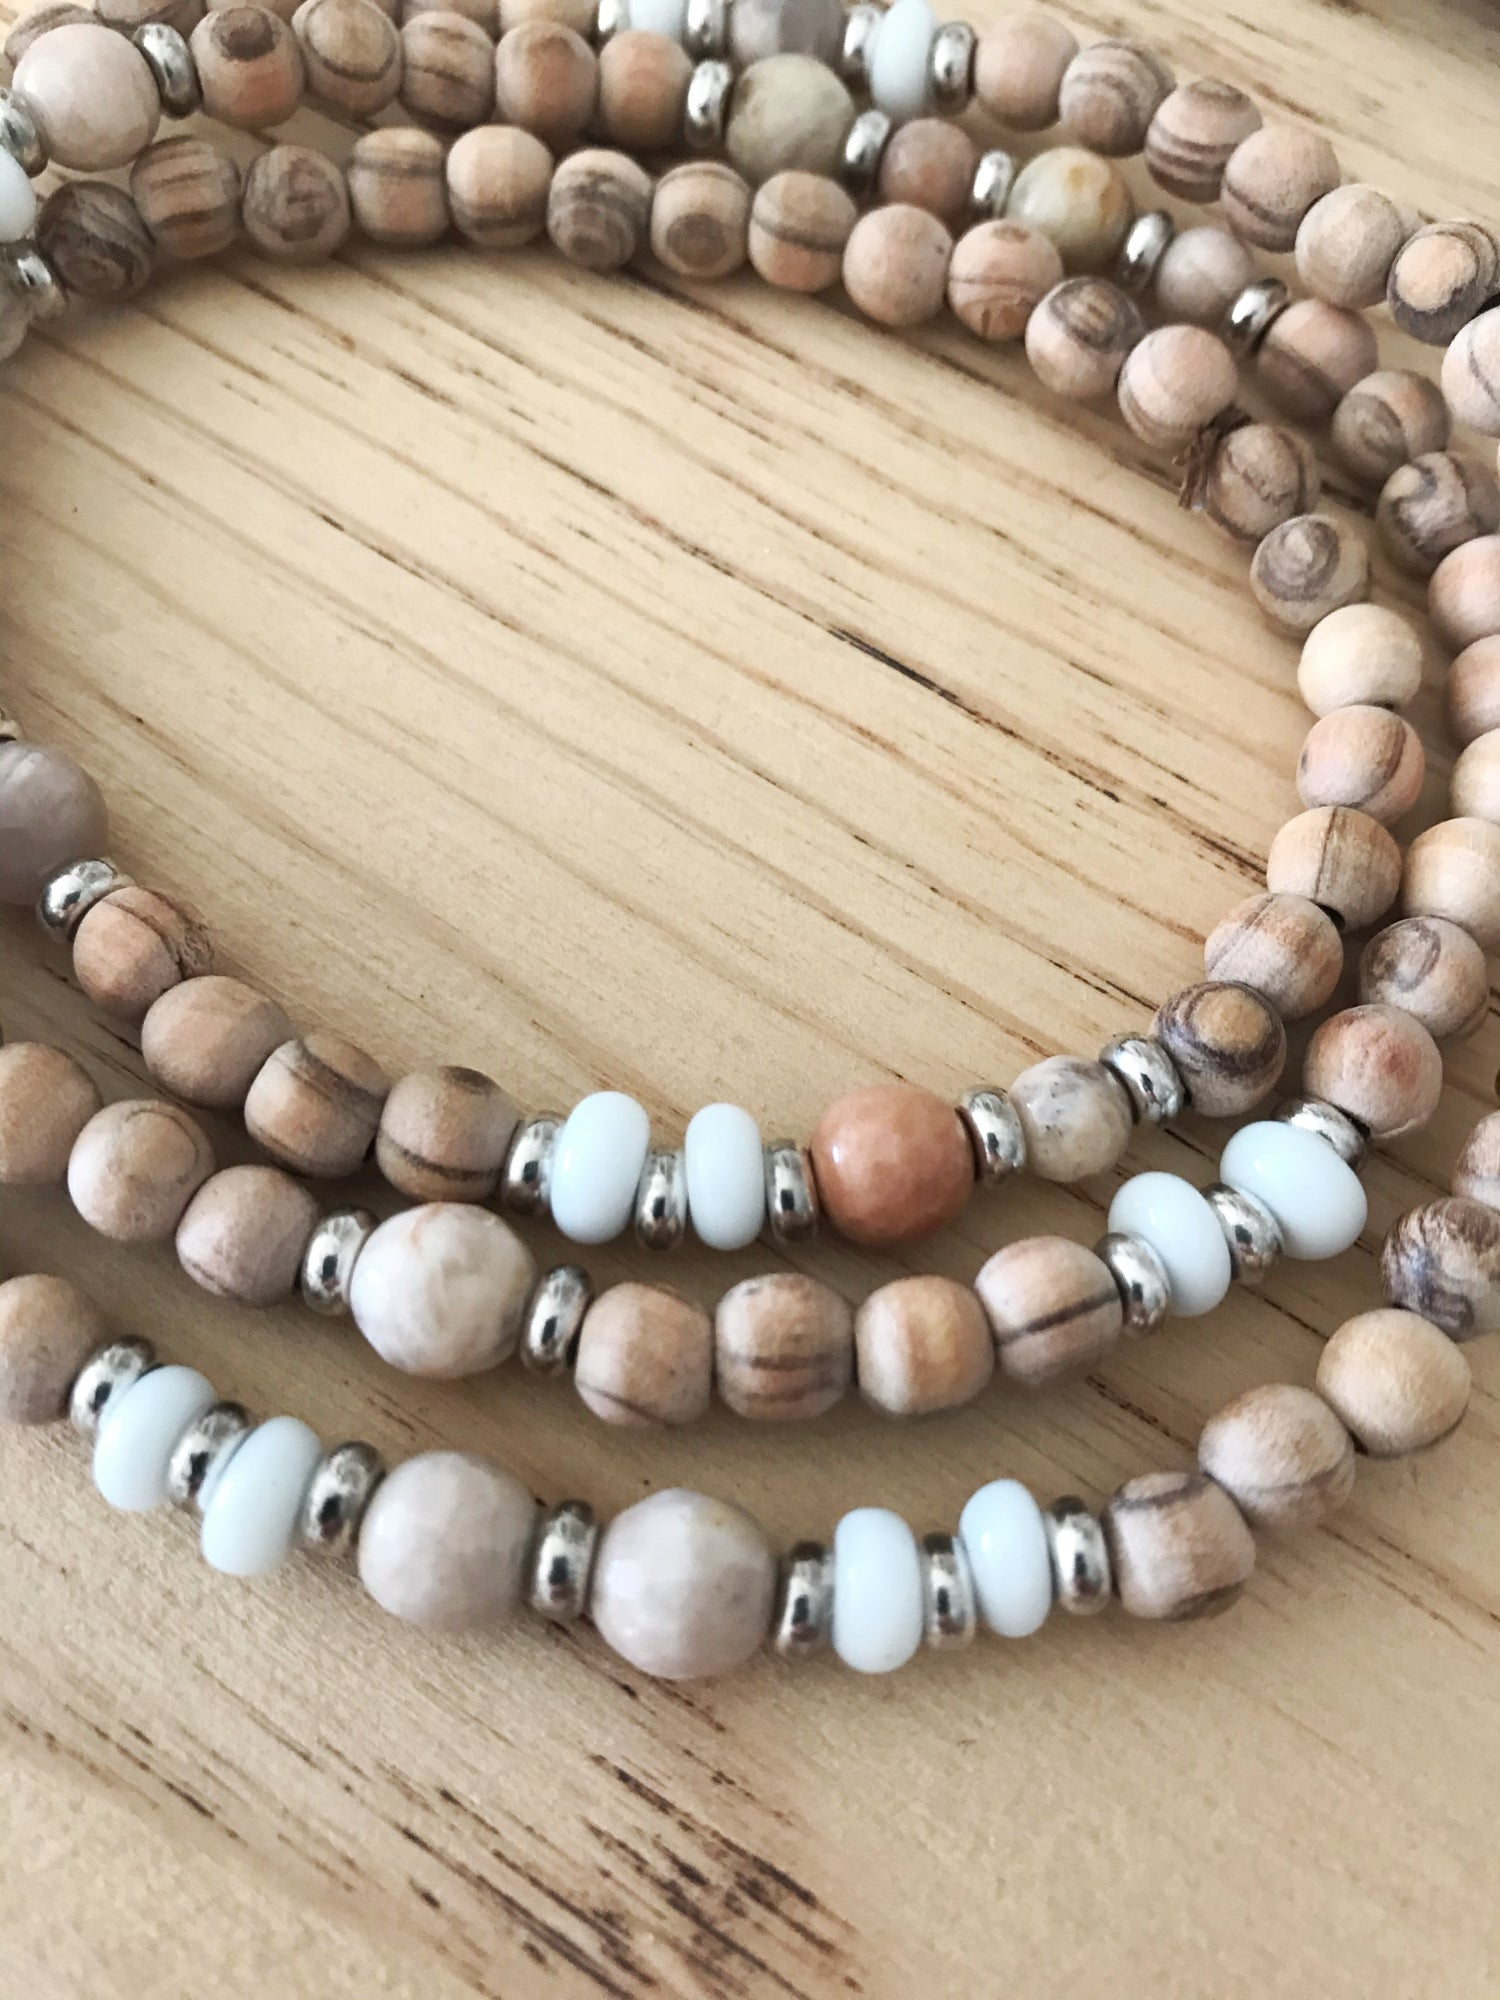 Image of Love Bead Necklace #107 - Raw Olive Wood Beads, Gemstones